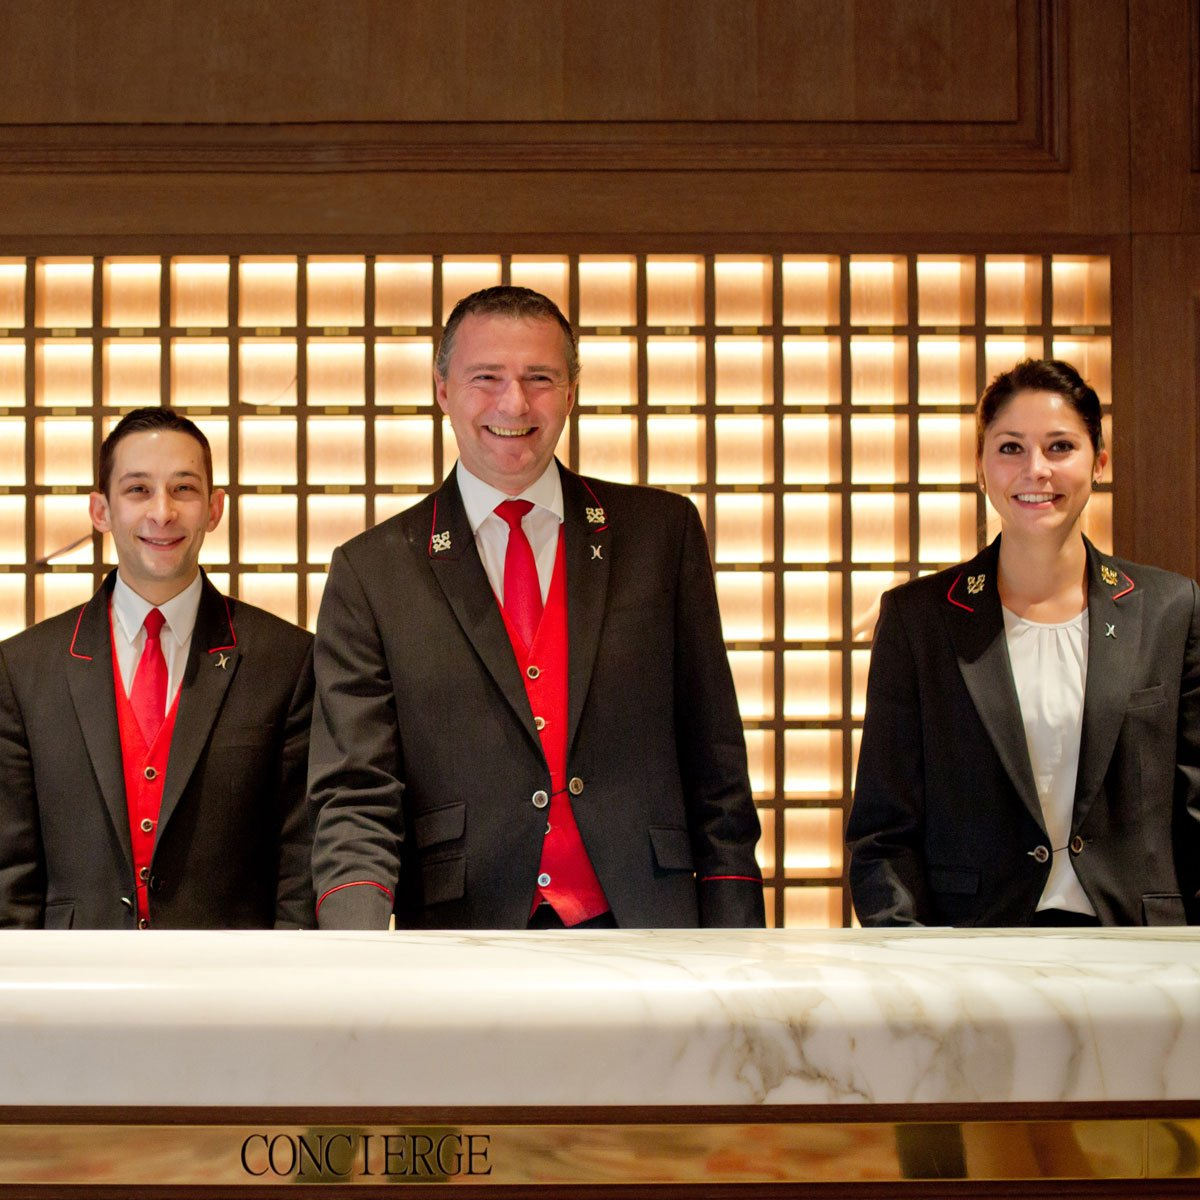 Our concierge team